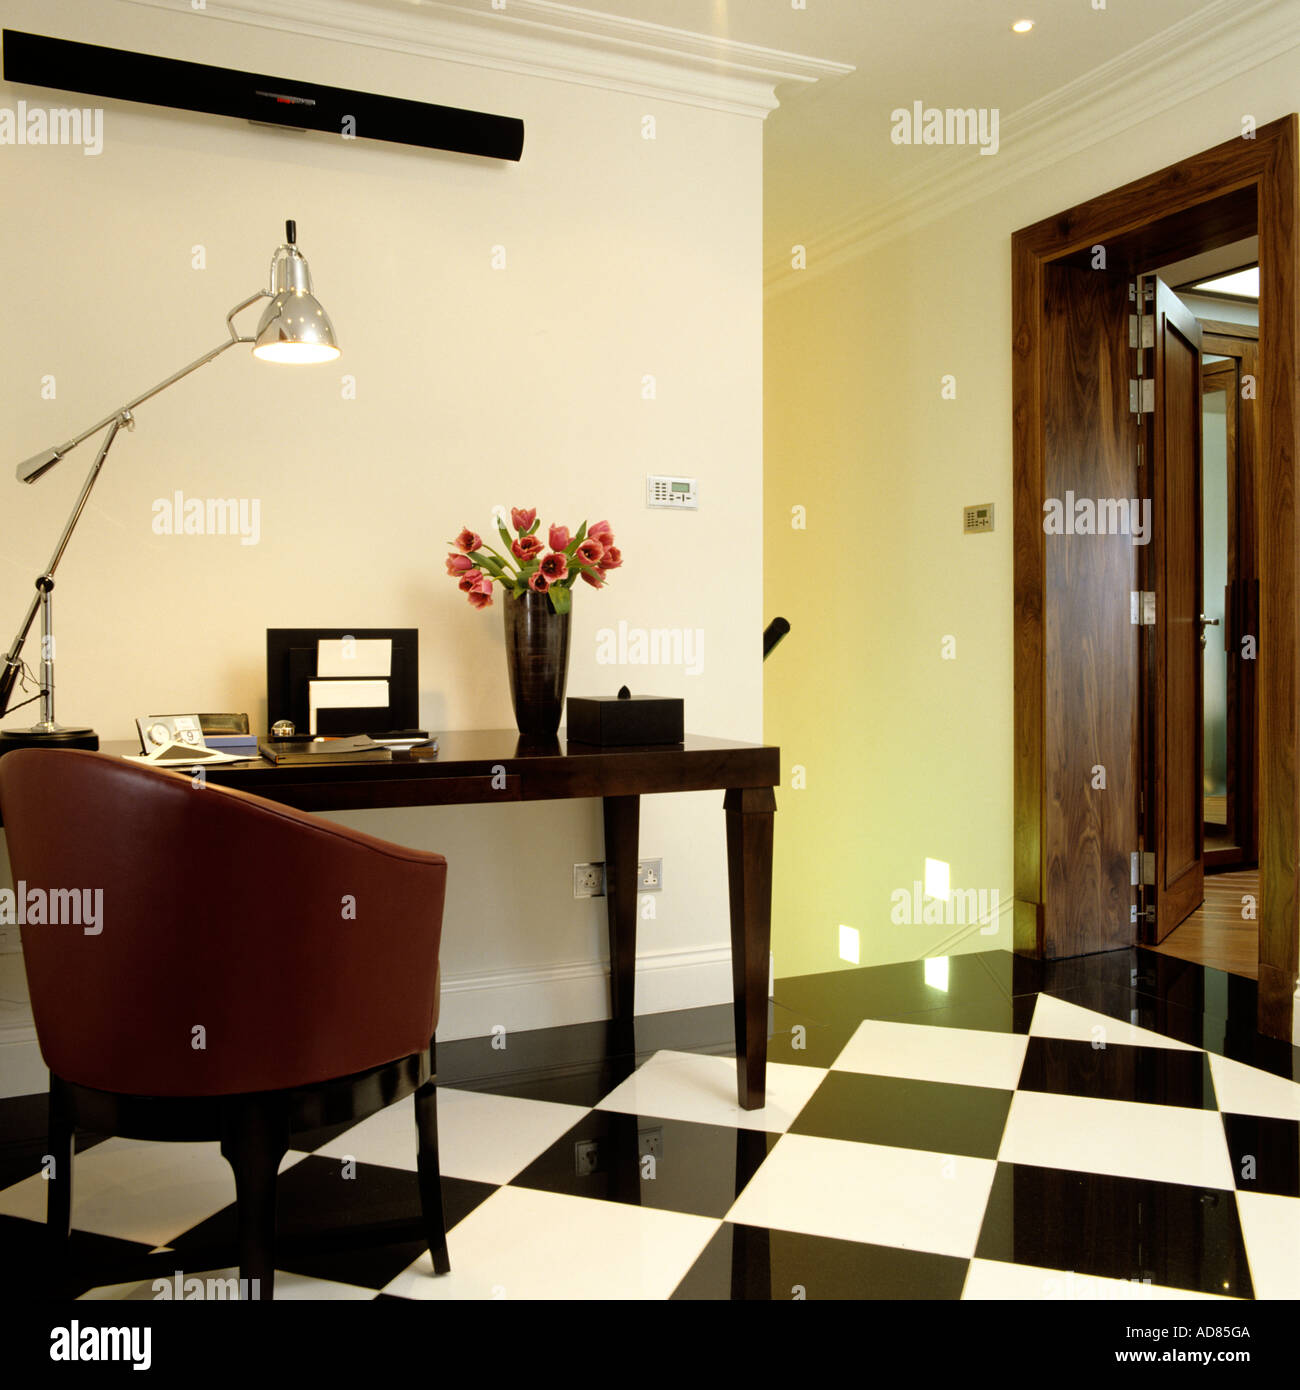 Entrance Hall With White Furniture Stock Photos & Entrance Hall With ...